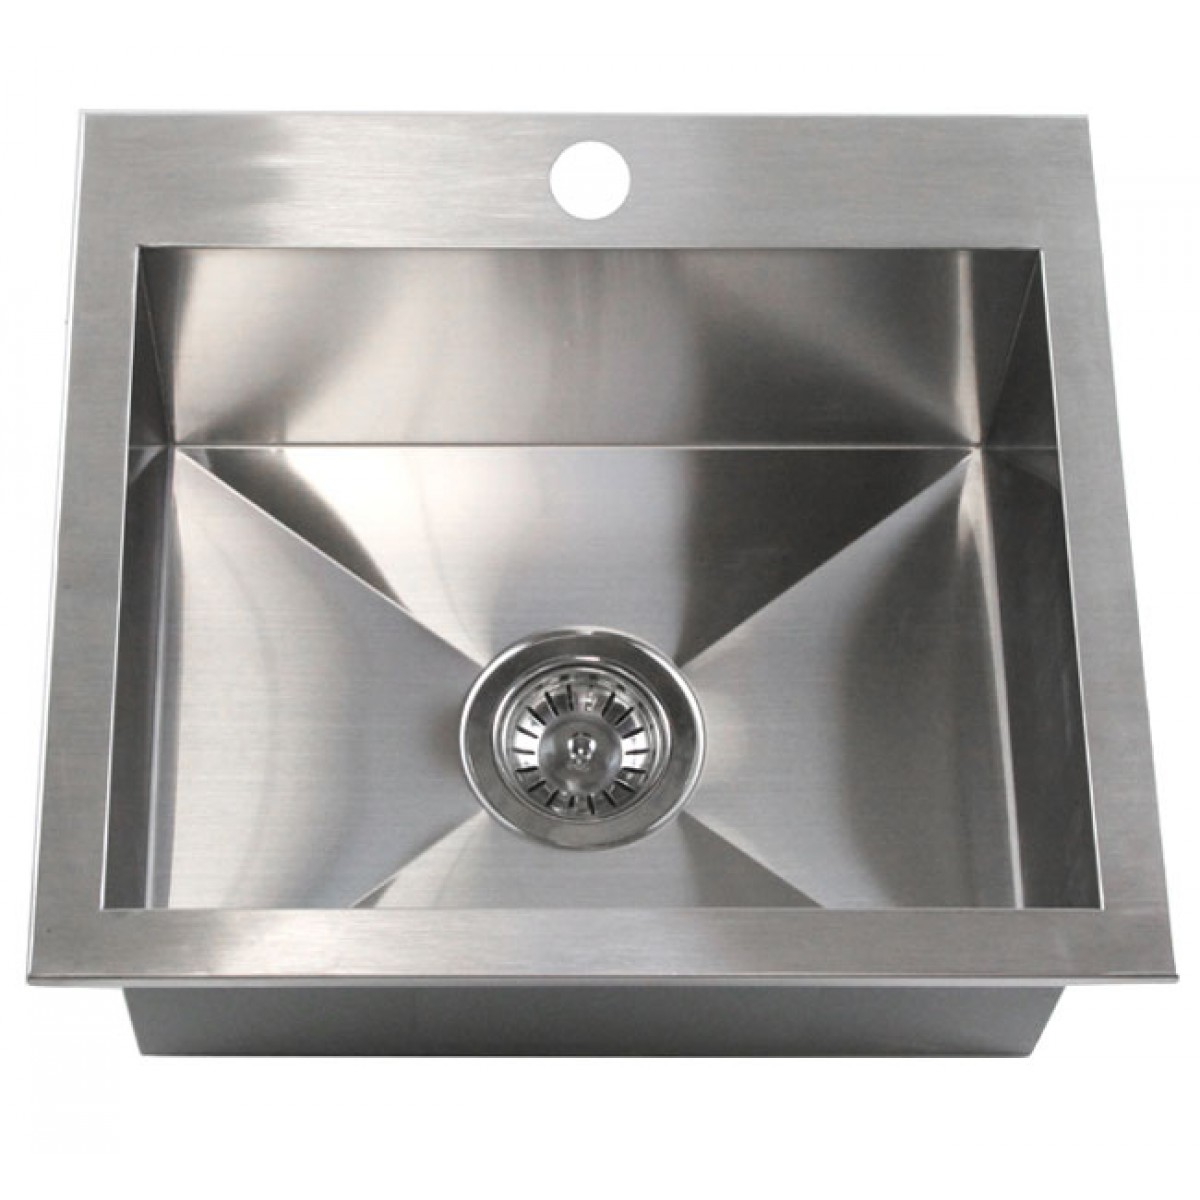 19 Inch Top Mount Drop In Stainless Steel Single Bowl